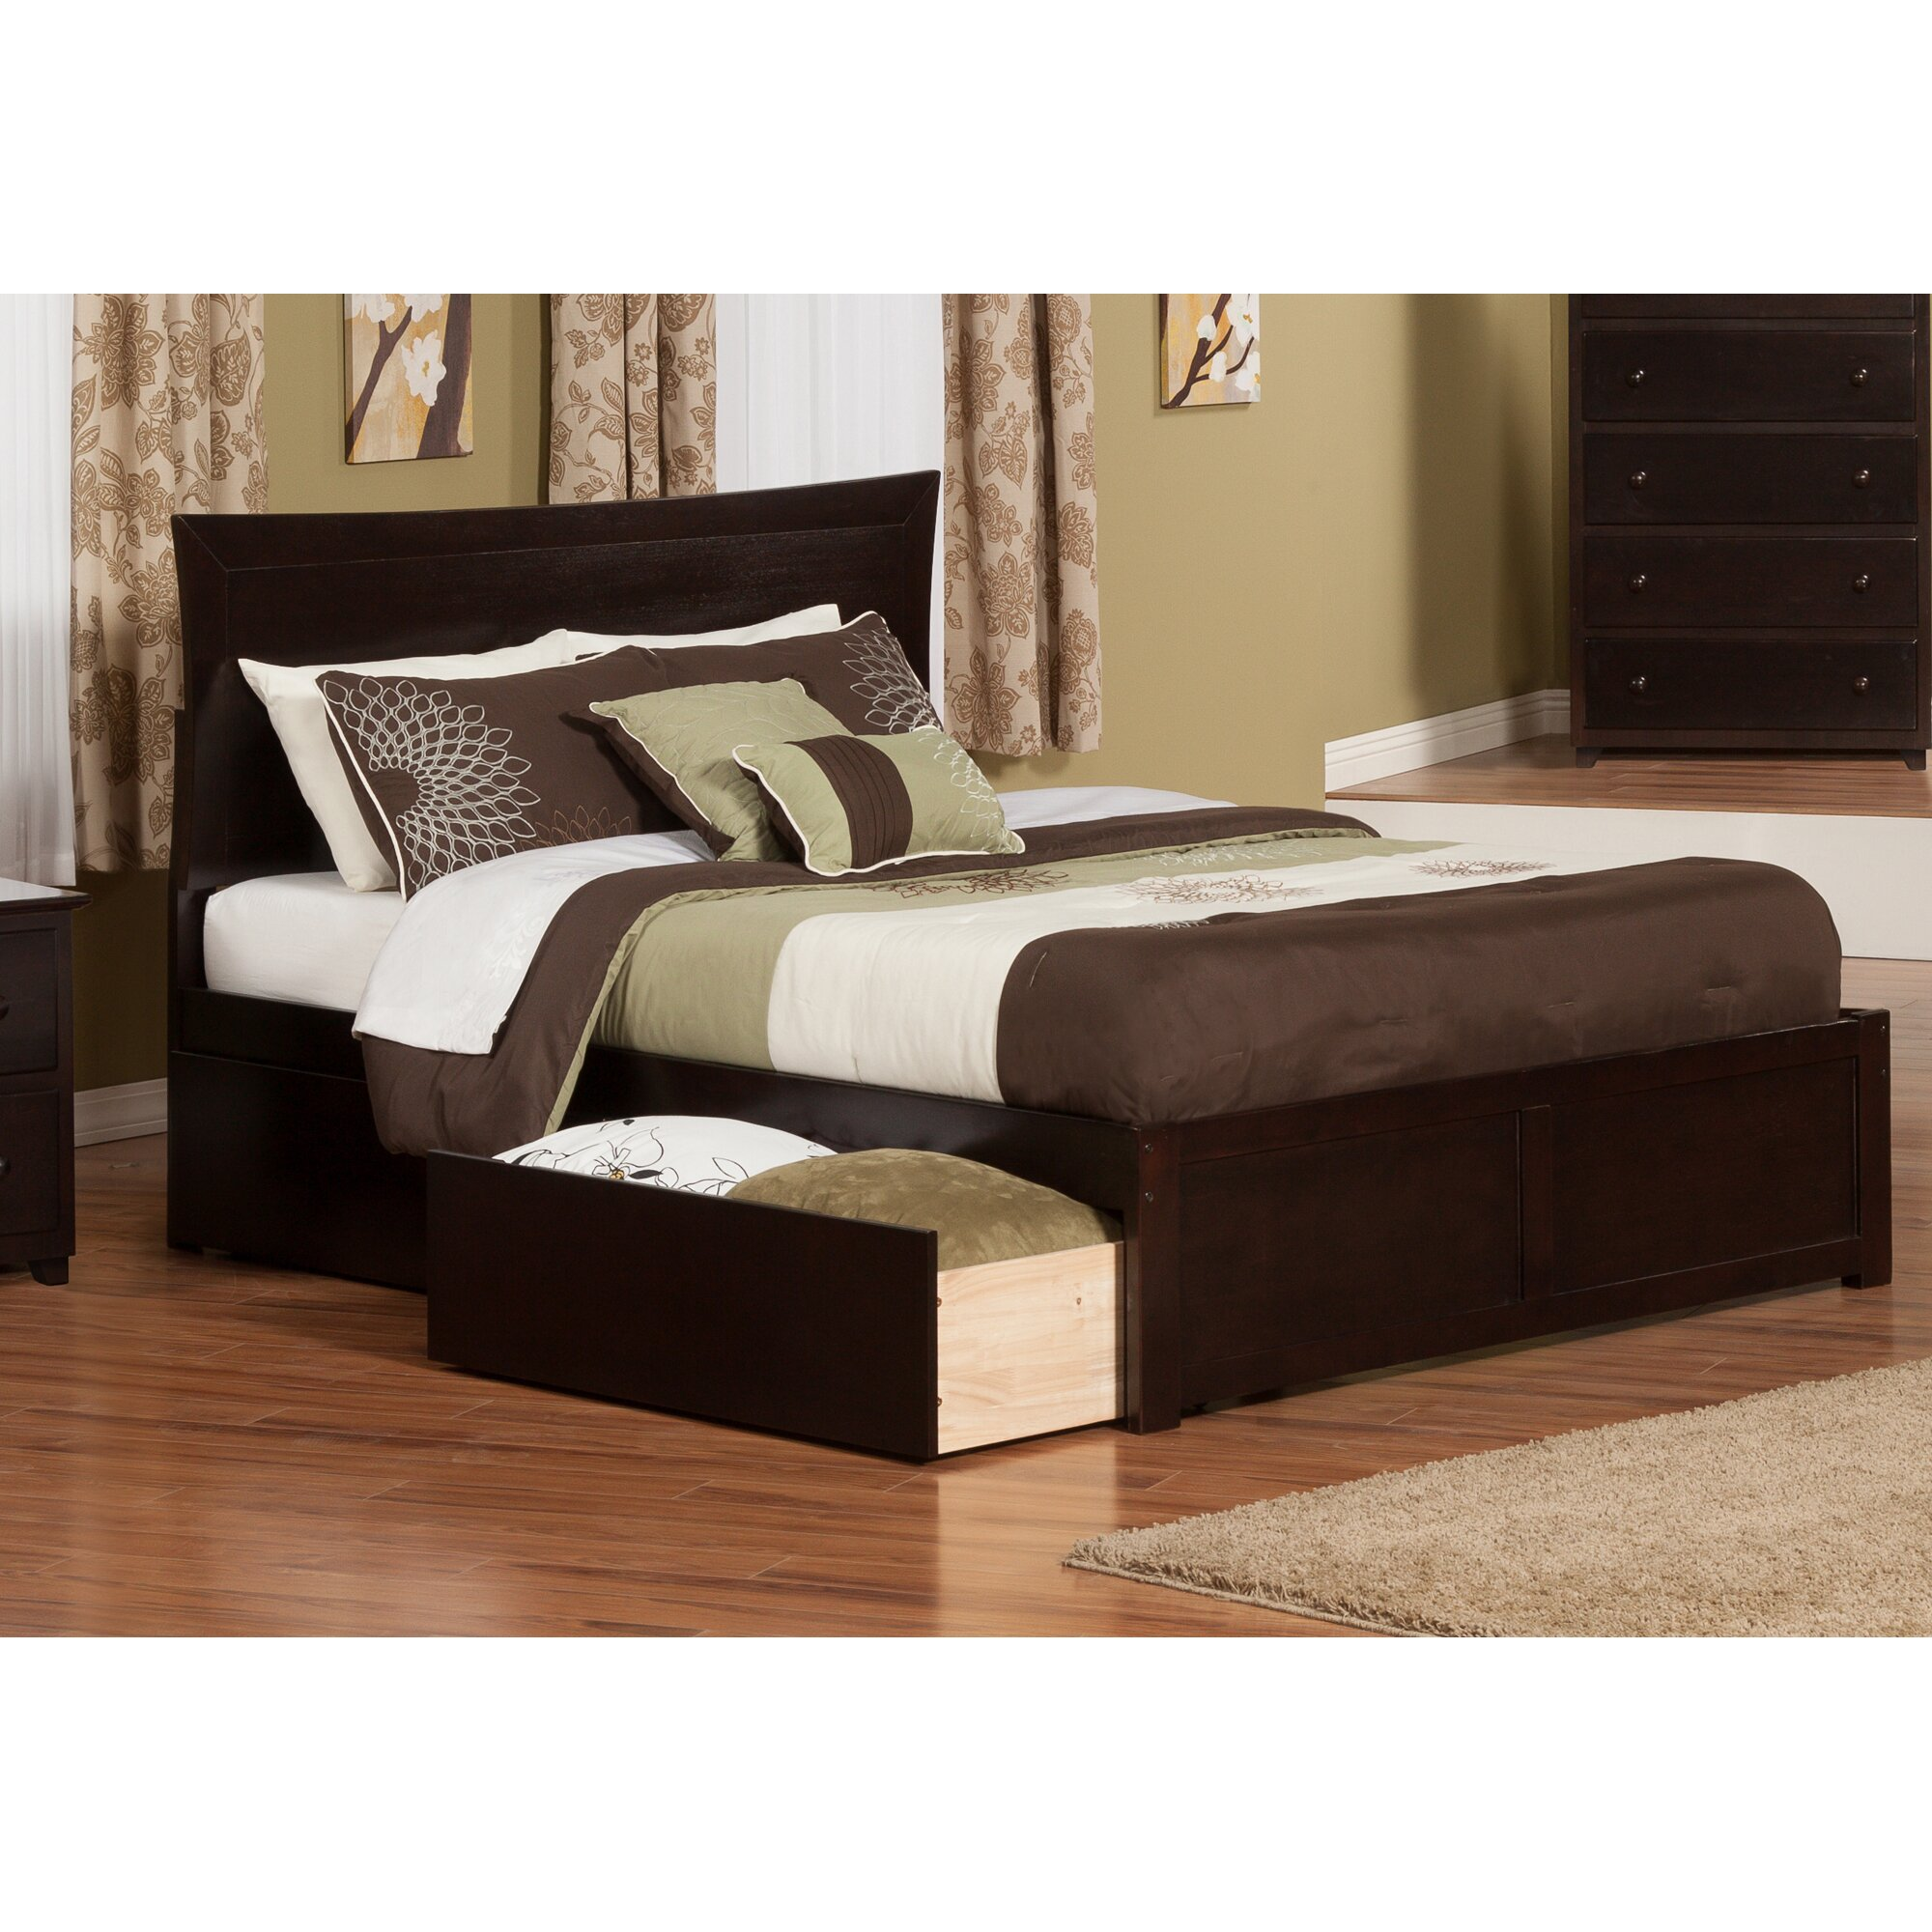 viv rae maryanne king storage platform bed reviews wayfair. Black Bedroom Furniture Sets. Home Design Ideas